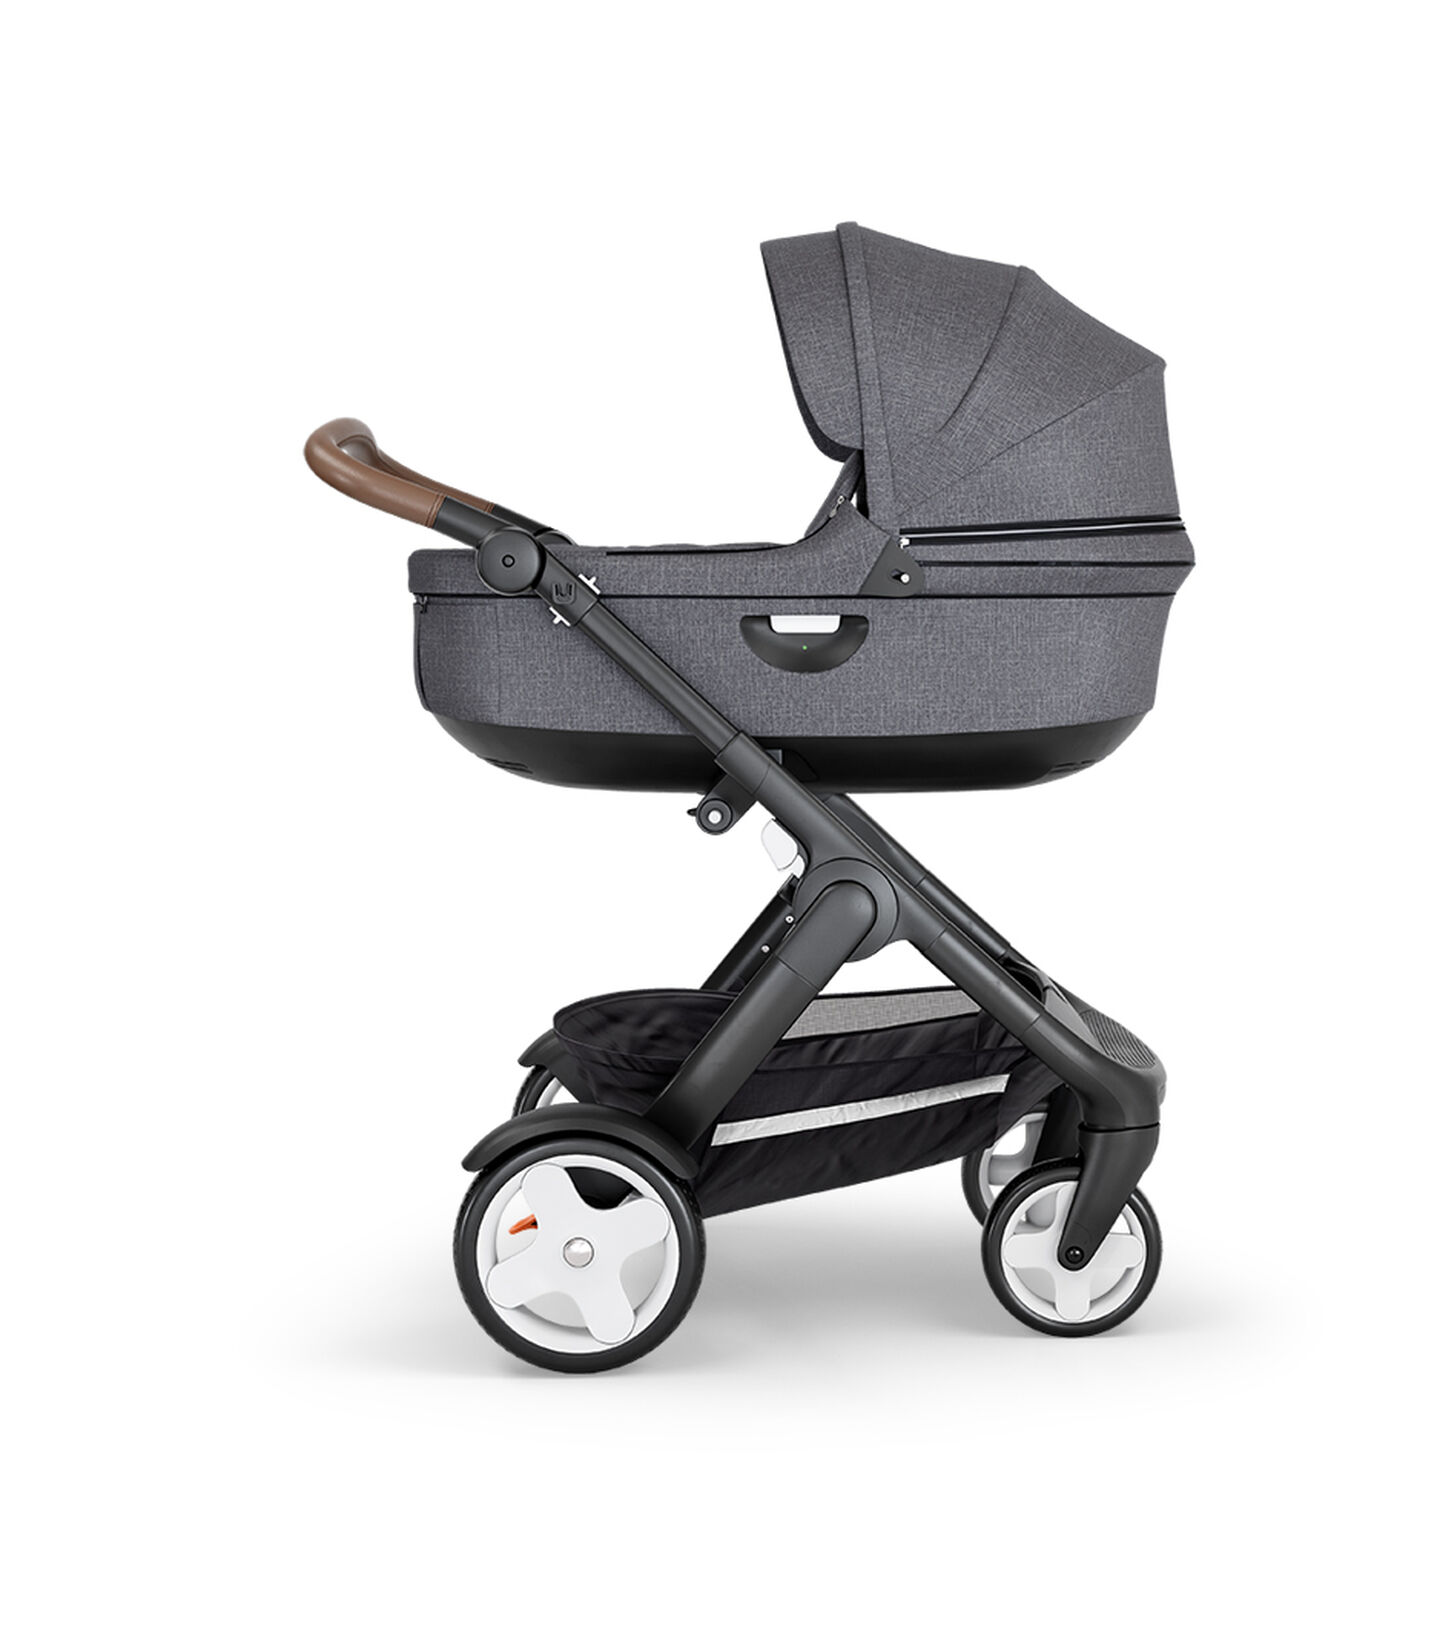 Stokke® Trailz™ with Black Chassis, Brown Leatherette and Classic Wheels. Stokke® Stroller Carry Cot, Black Melange.